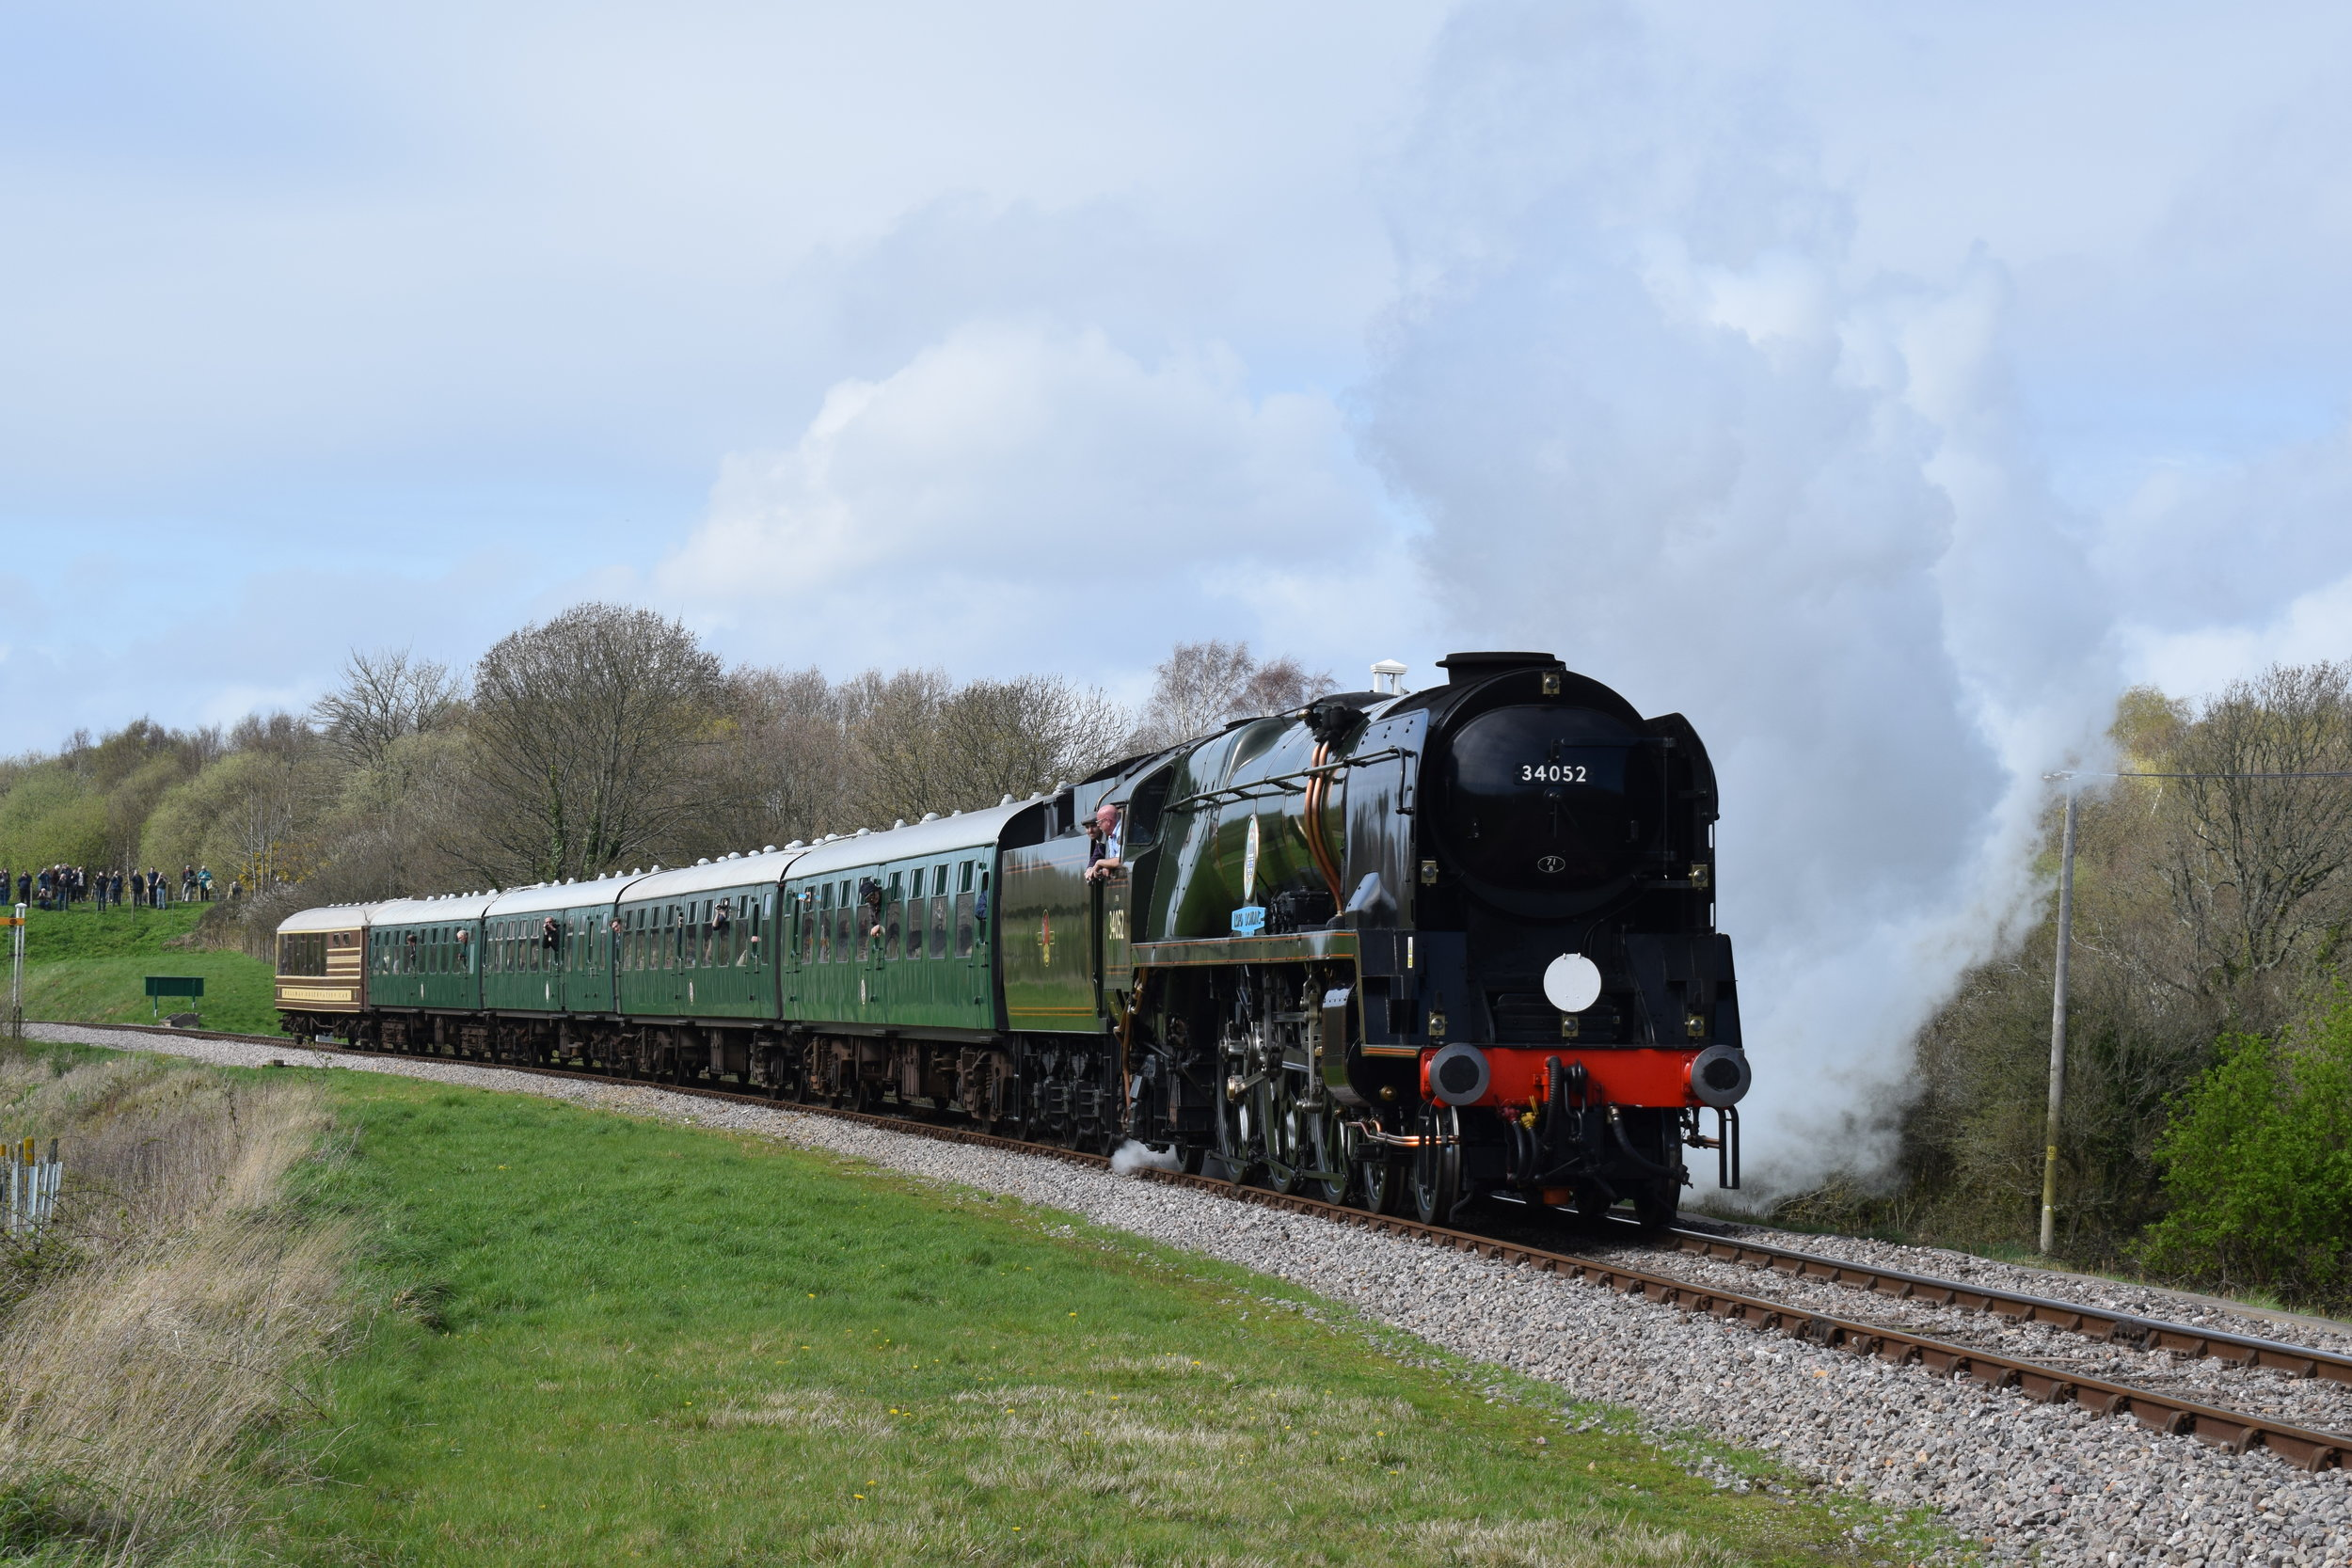 Locomotive Services Ltd., which owns 'West Country' No. 34046  Braunton  (currently masquerading as 'BB' No. 34052  Lord Dowding ), became a Train Operating Company on August 4. The Bulleid 'Pacific' is pictured leaving Norden on March 31 at the Swanage Railway's 'Strictly Bulleid' gala. THOMAS BRIGHT/SR